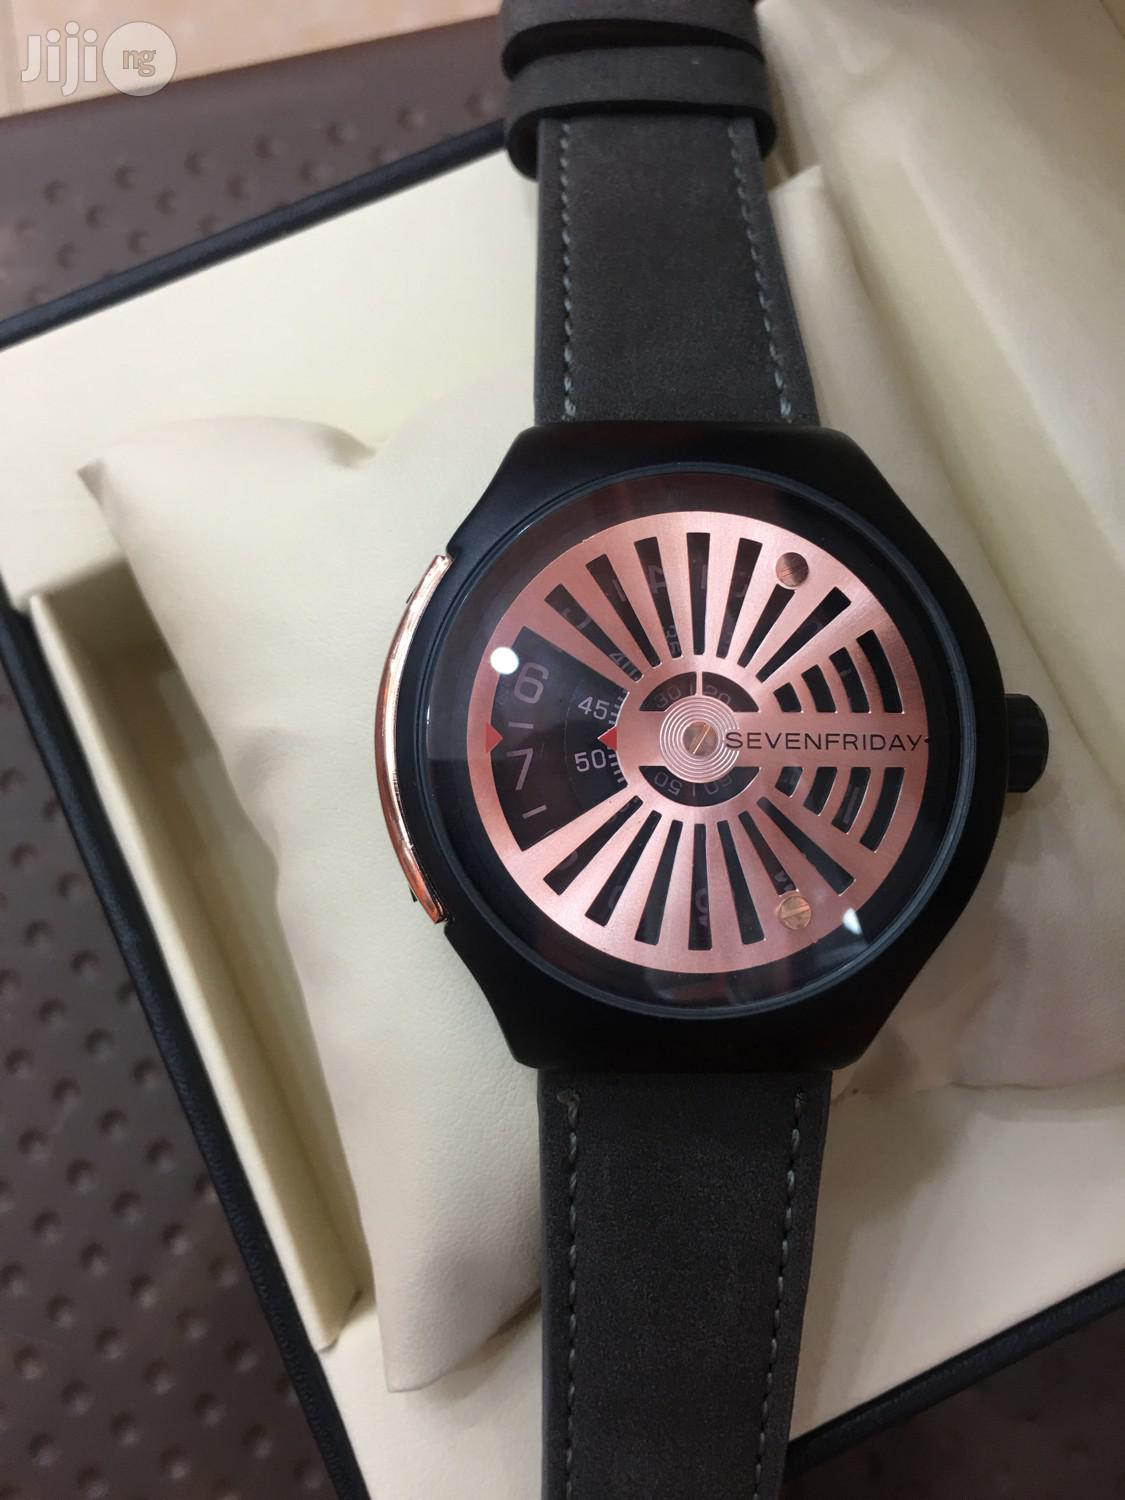 Sevenfriday Watch | Watches for sale in Surulere, Lagos State, Nigeria